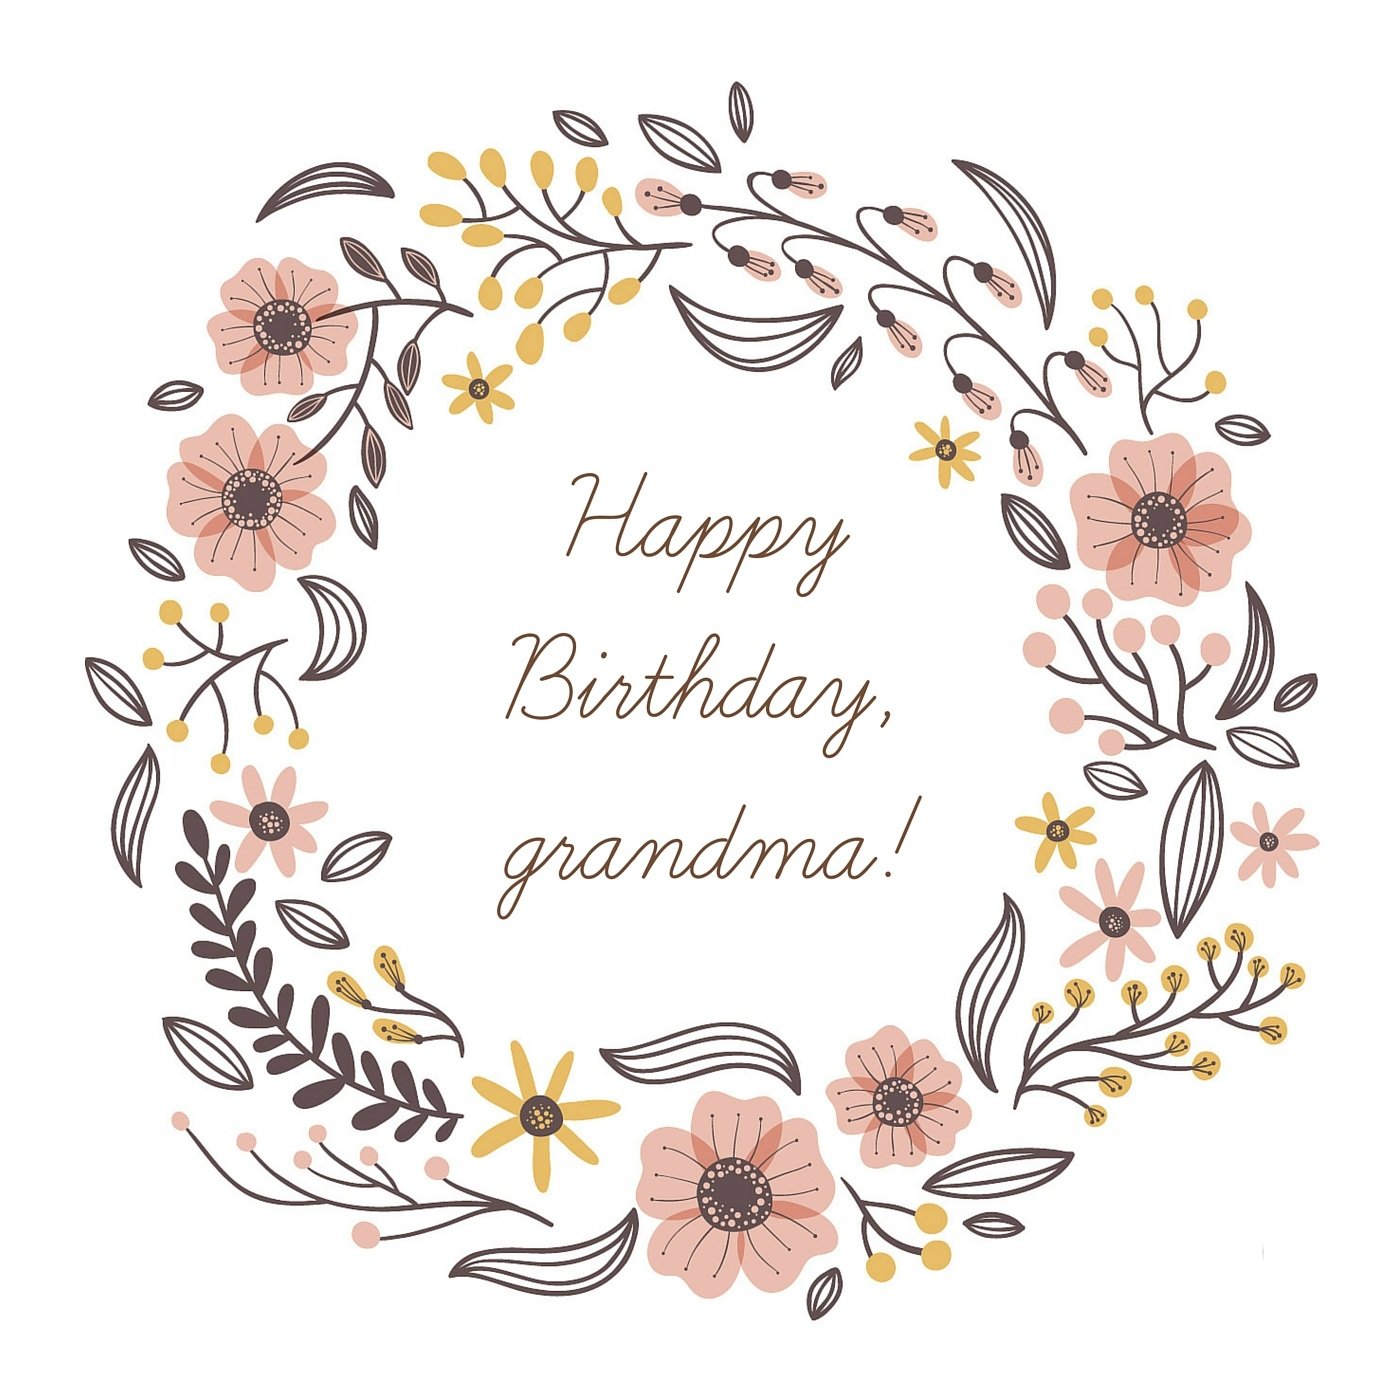 birthday greeting cards drawing ; 15aeb065c4d4a5cfdfe37e71df343848